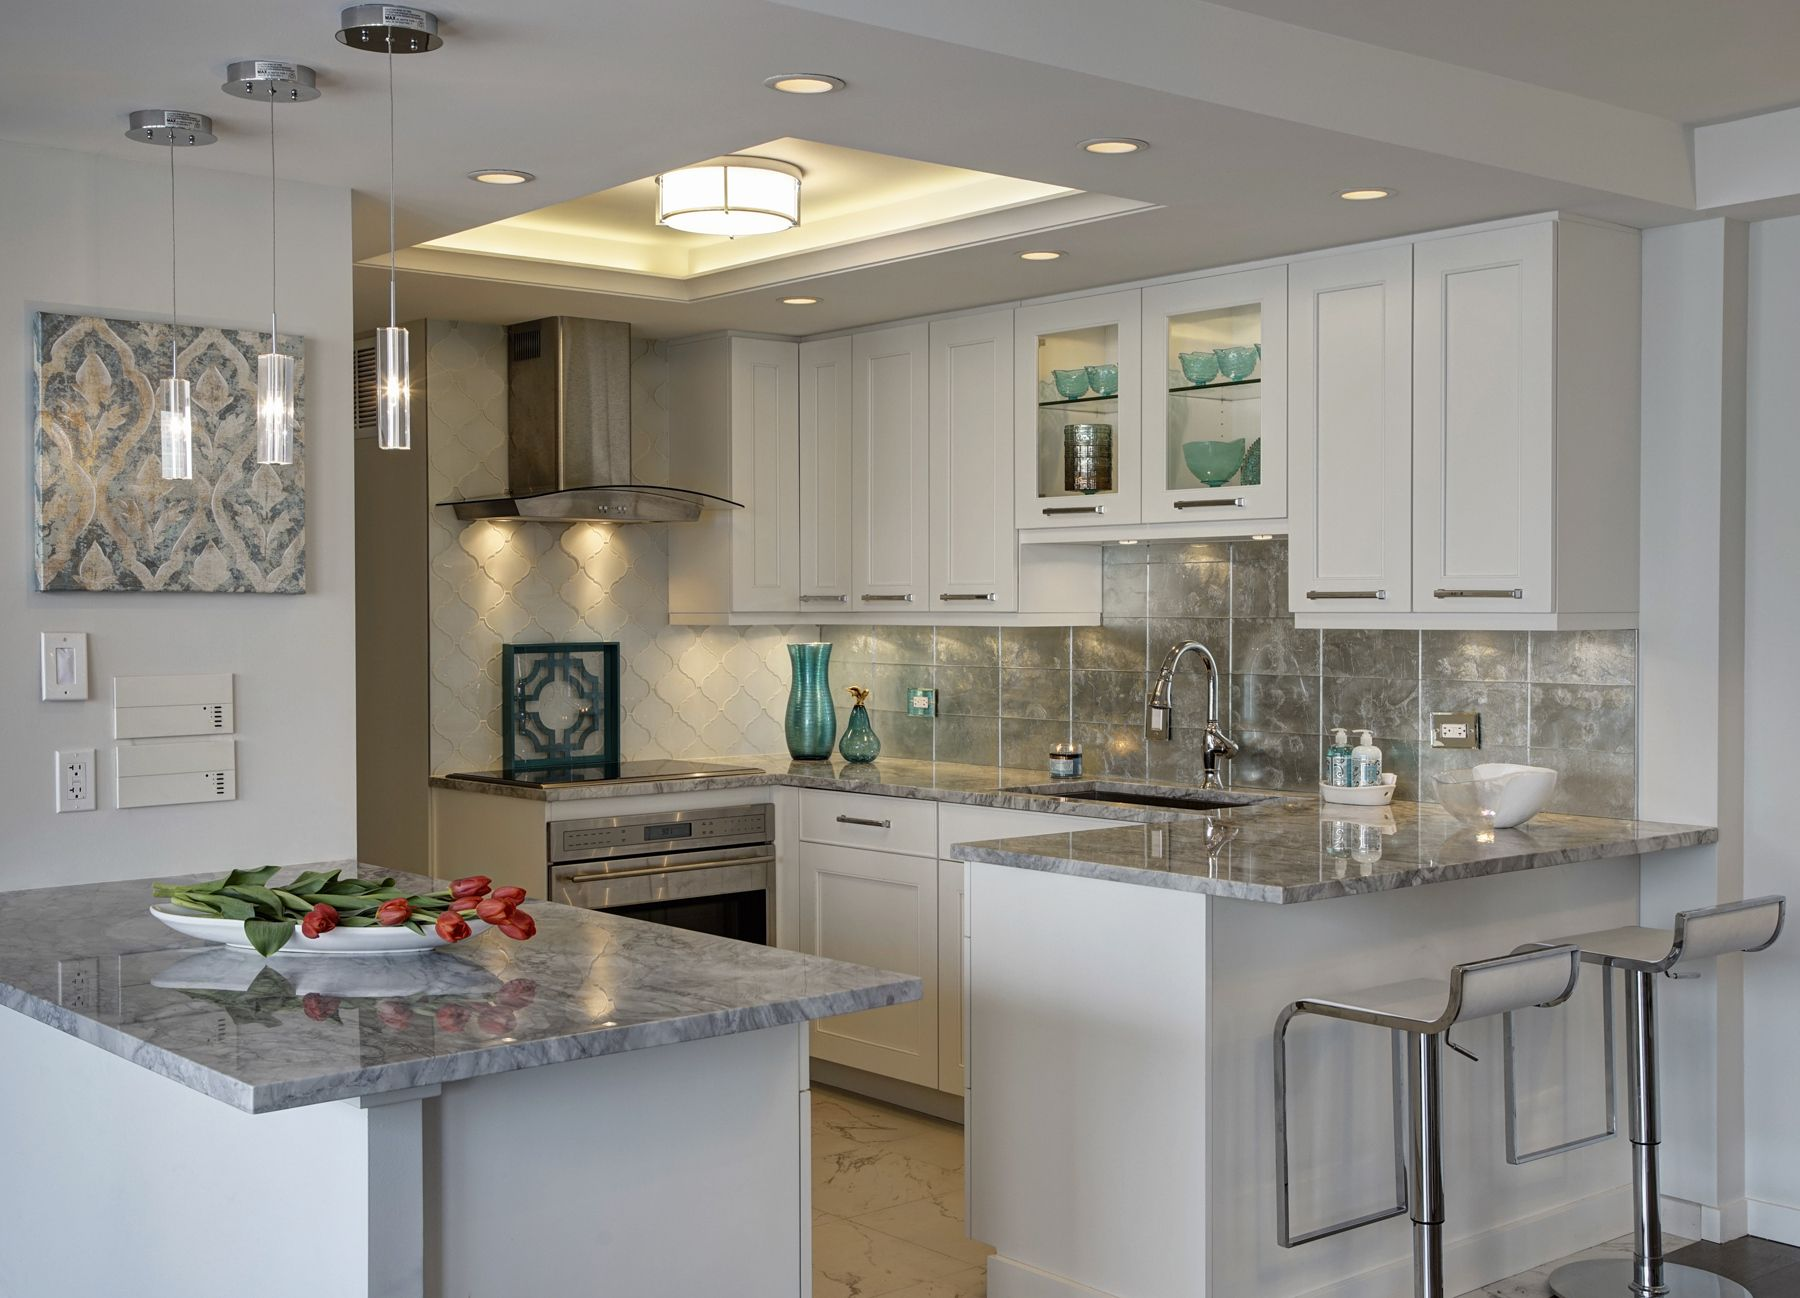 Kitchen and Bath Design Certificate Programs line Most Popular